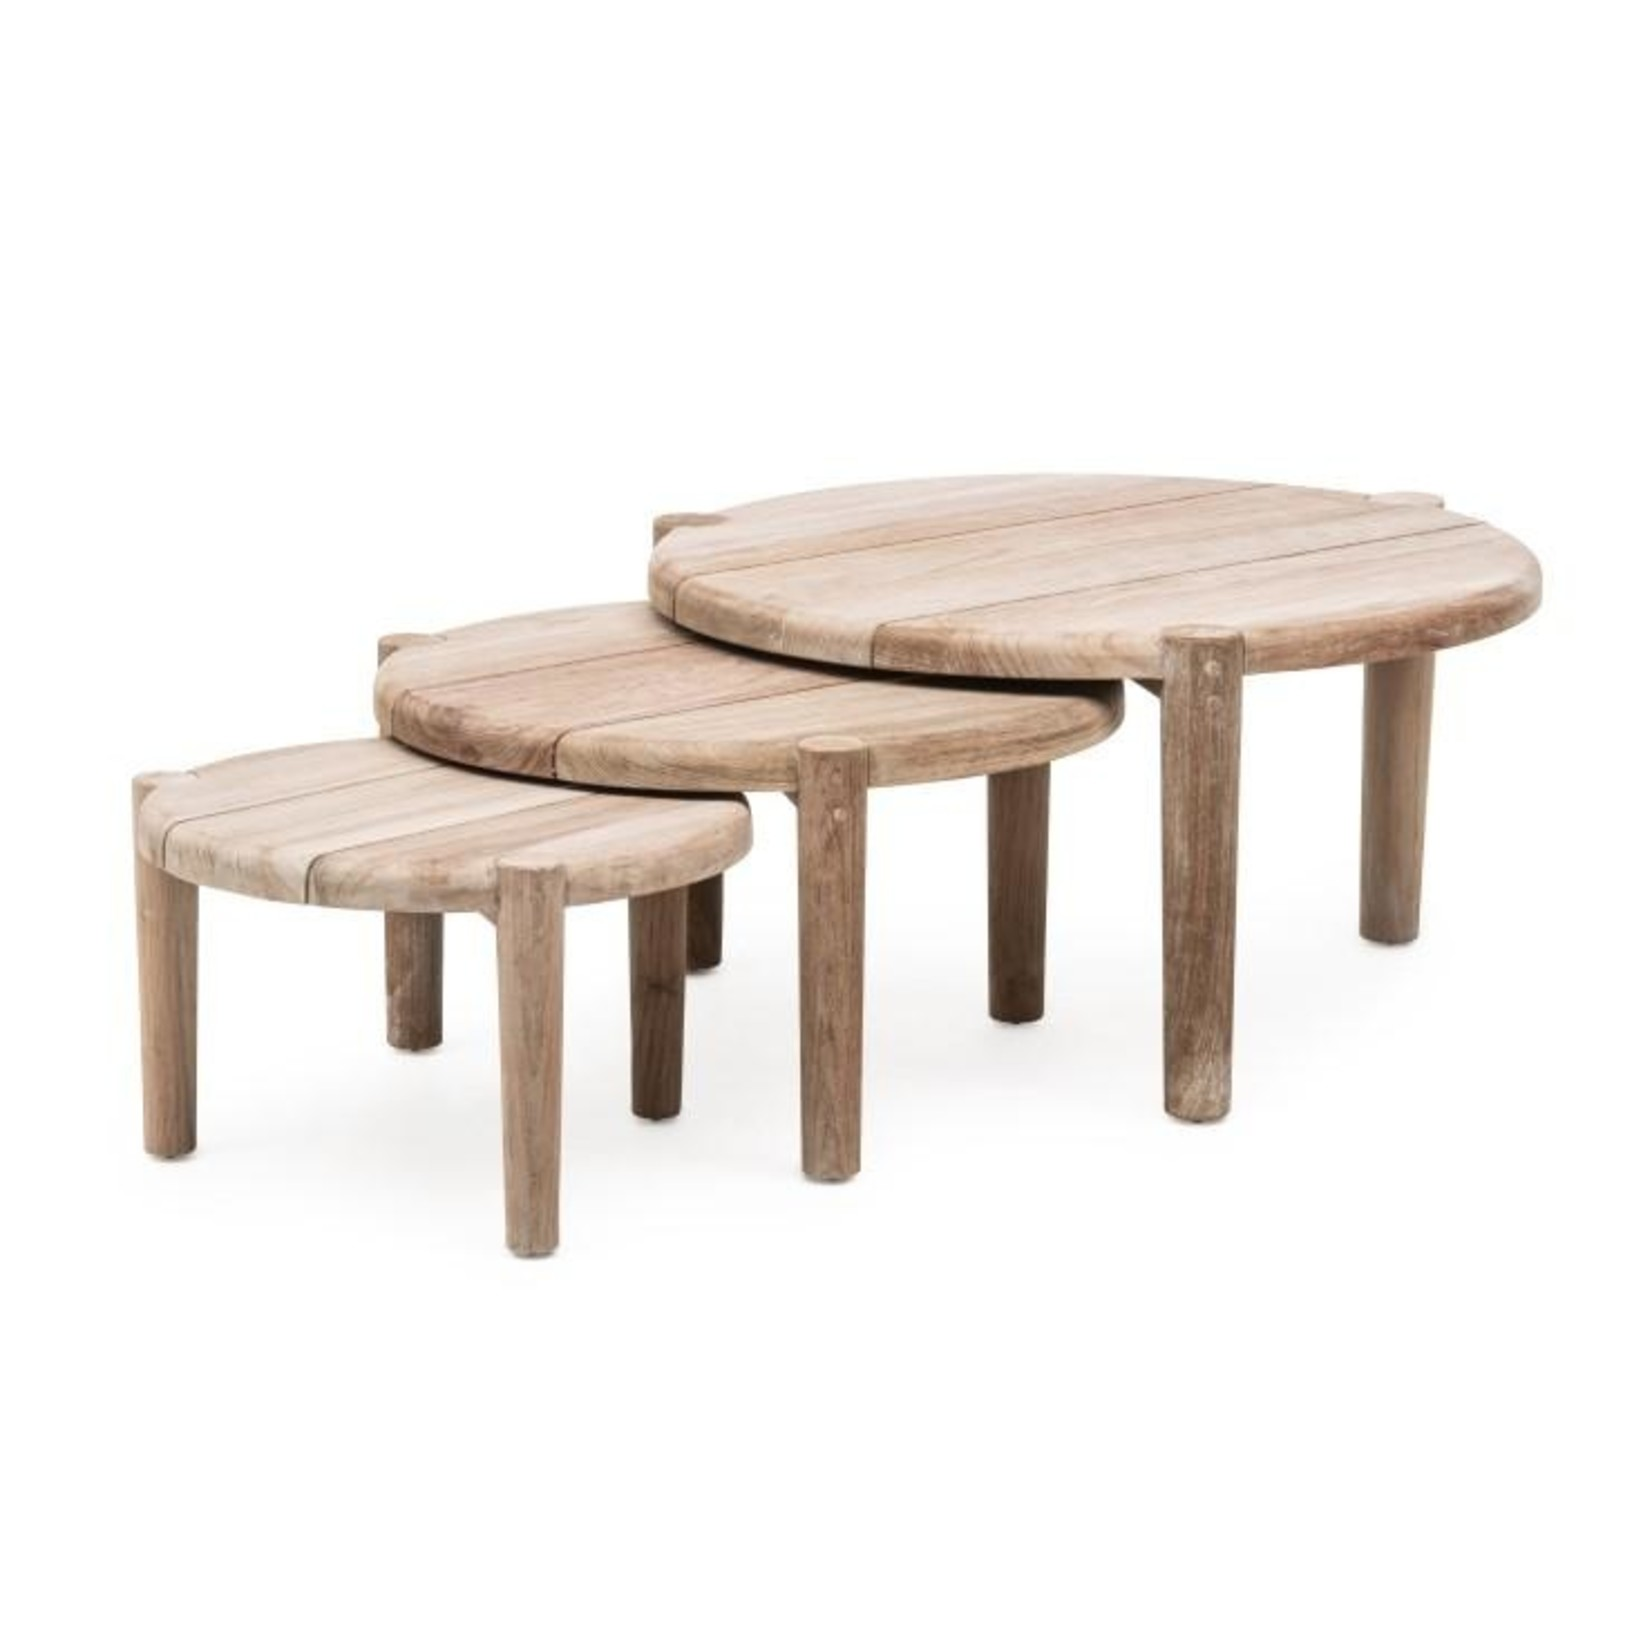 Gommaire Coffee Table Floor Set of 3 | Reclaimed Teak Natural Gray